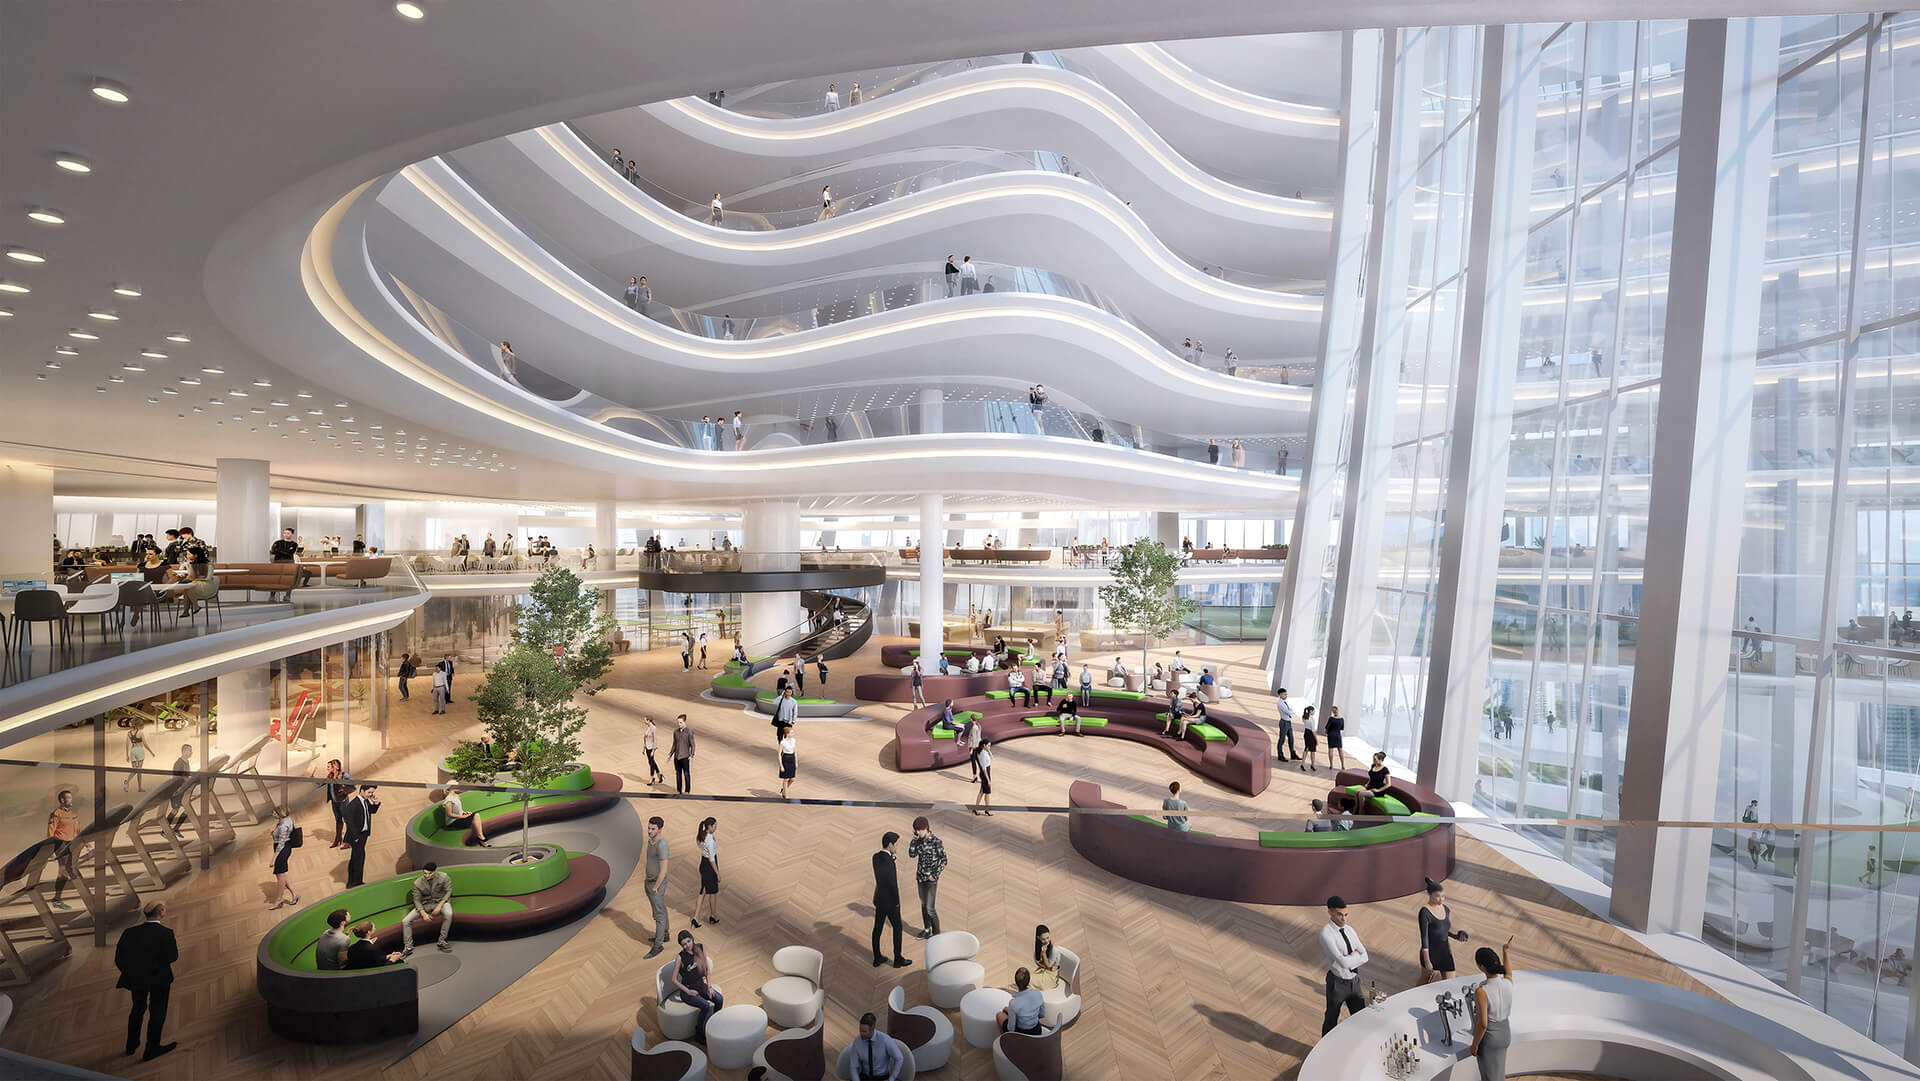 Visual connectivity is enhanced throughout the building through vast atrium spaces | OPPO Headquarters | Zaha Hadid Architects | STIRworld